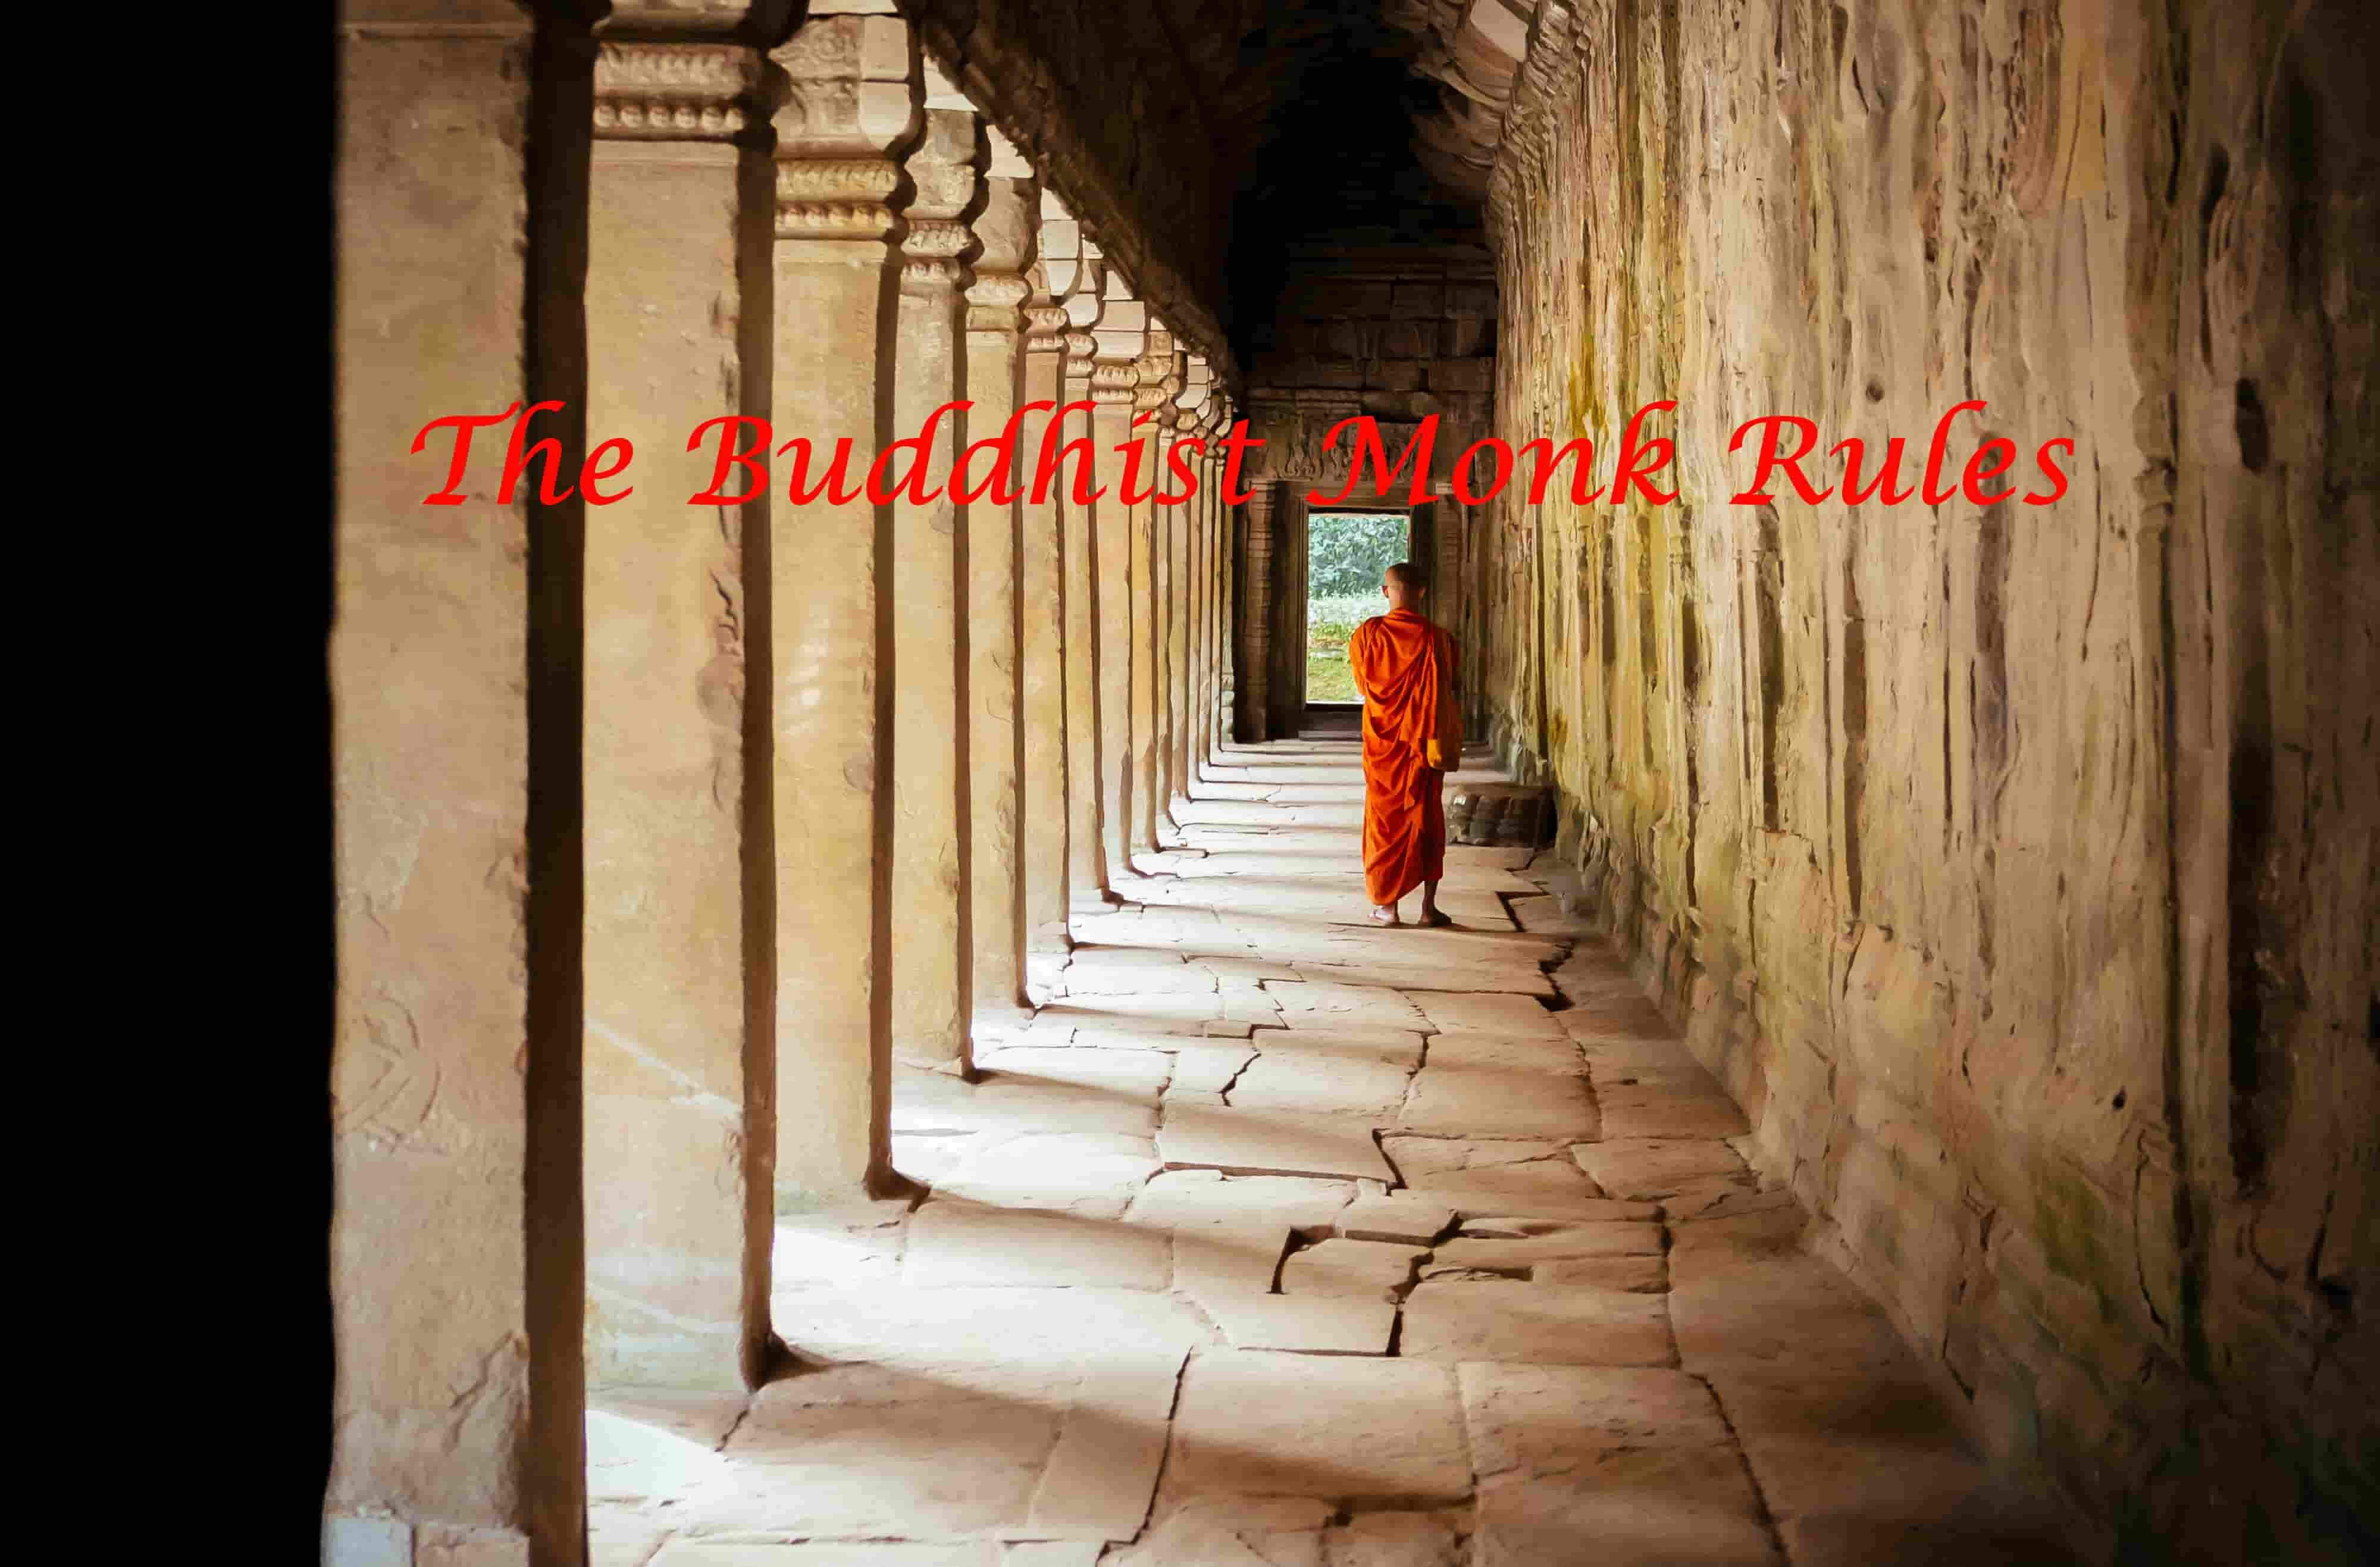 The Buddhist Monk Rules